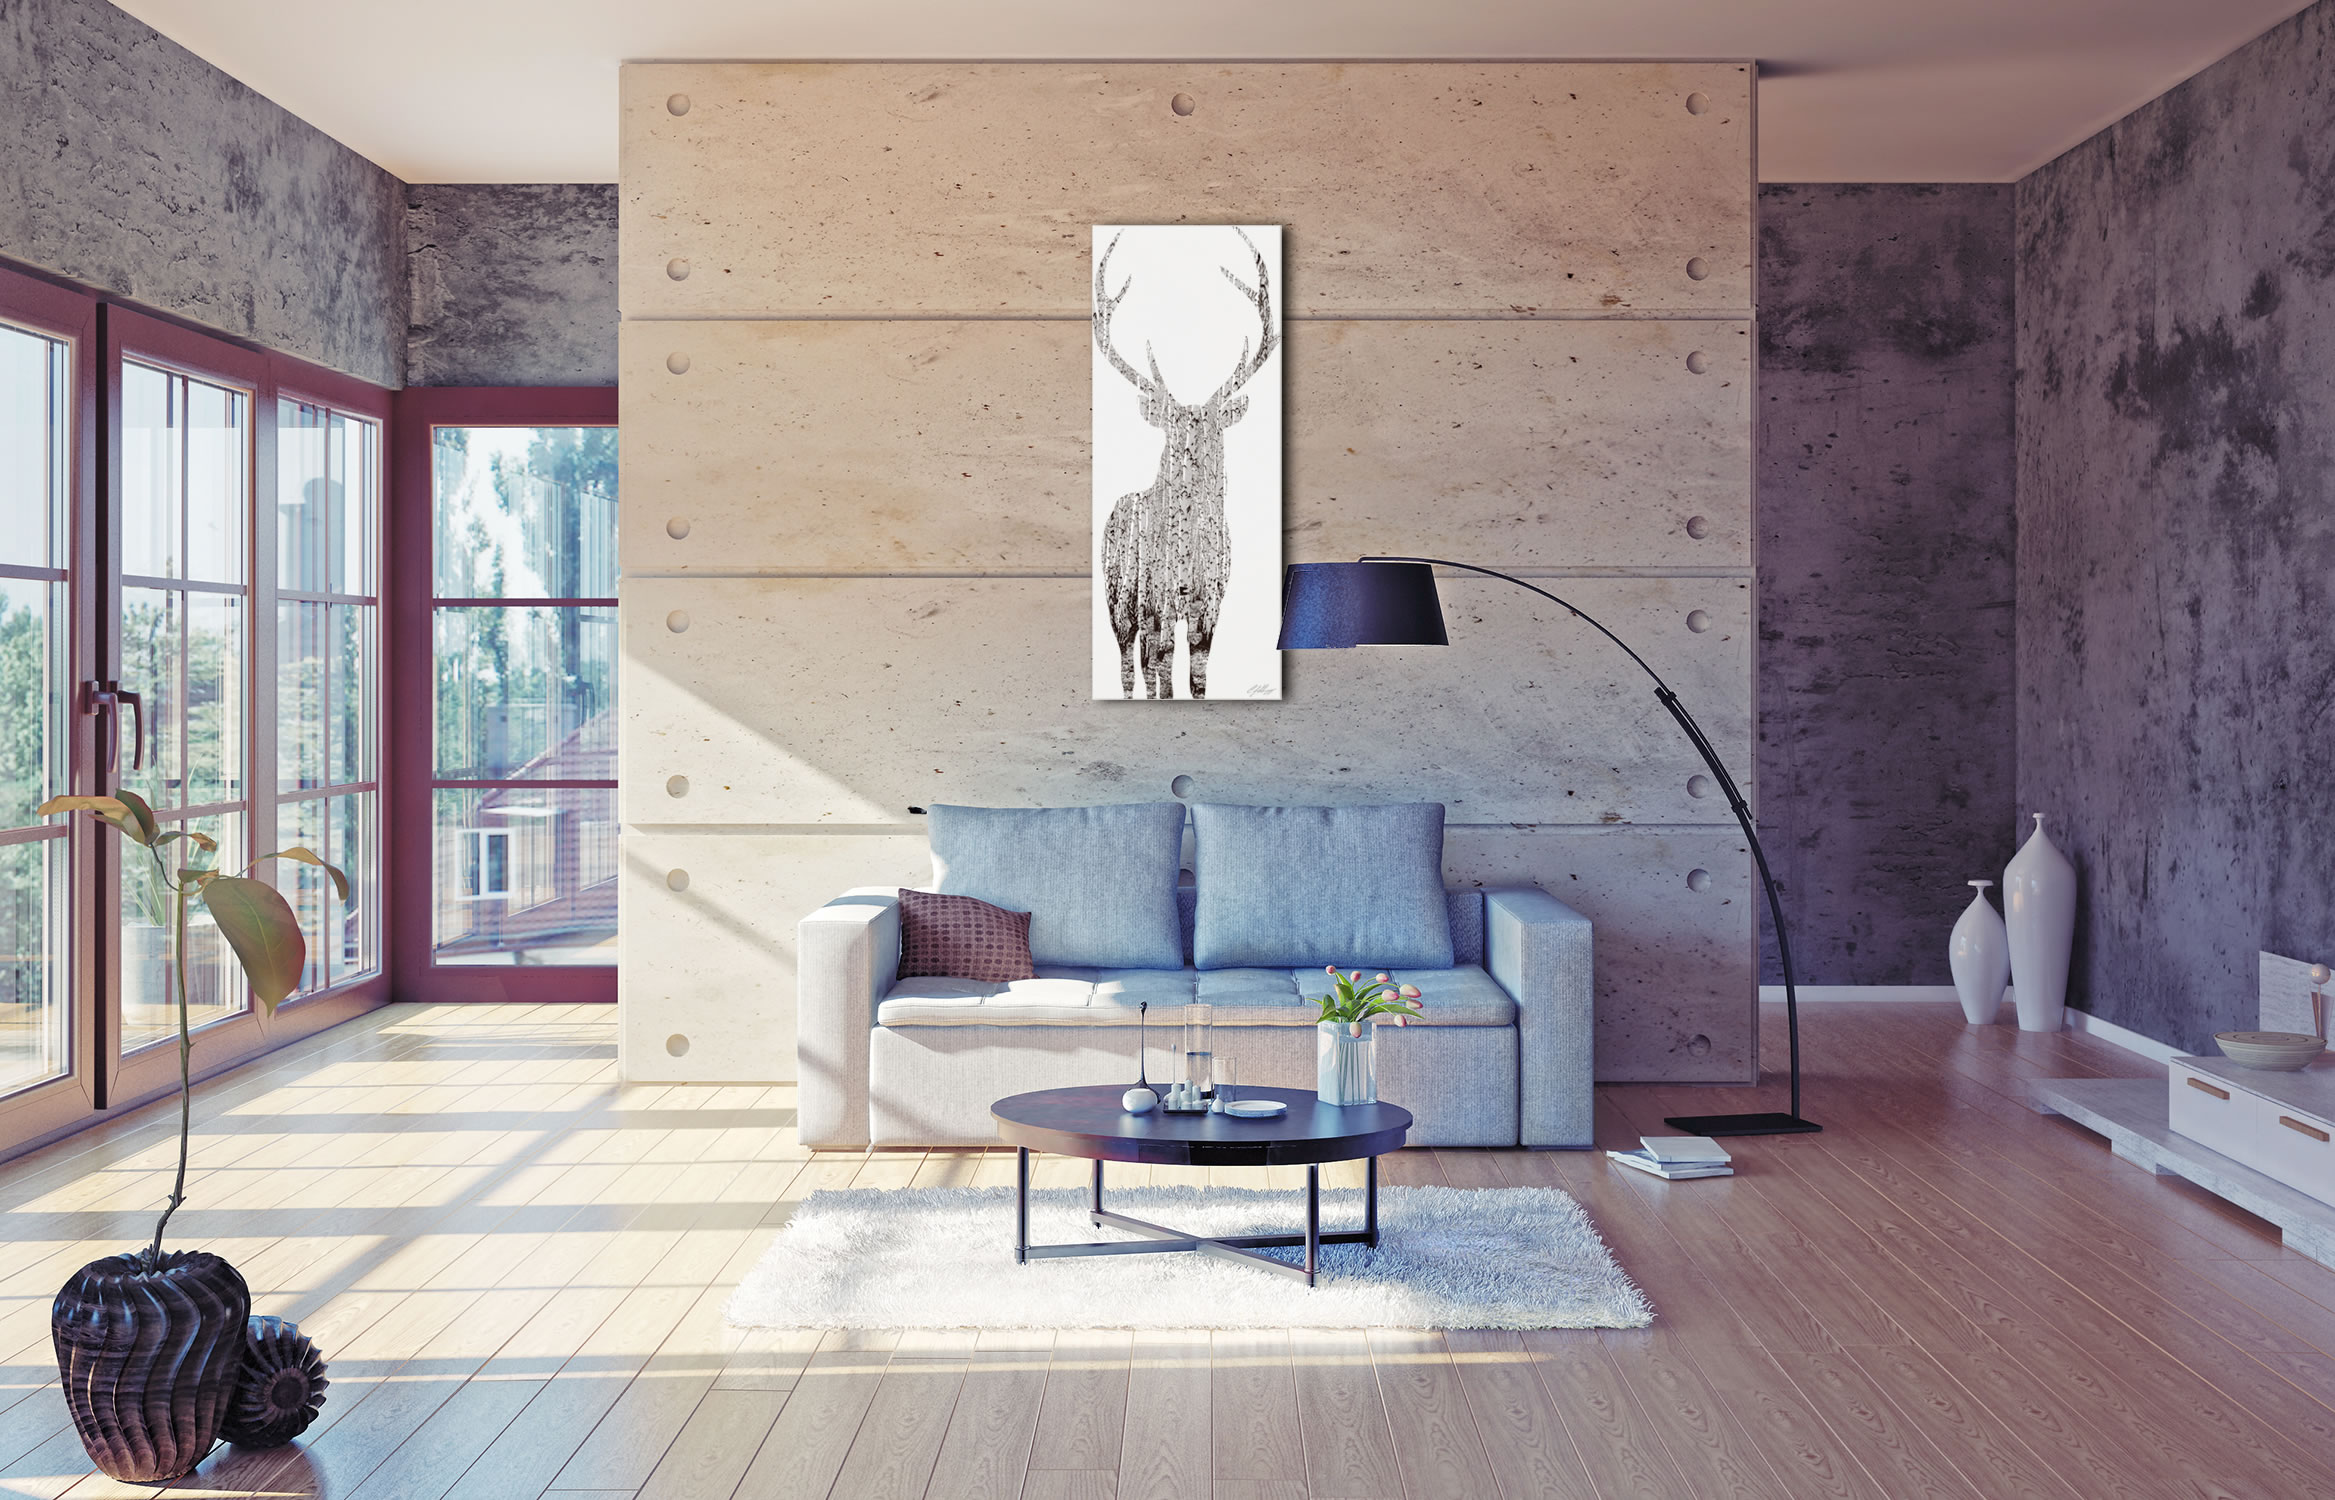 BIRCH DEER - 48x19 in. Metal Animal Print - Lifestyle Image